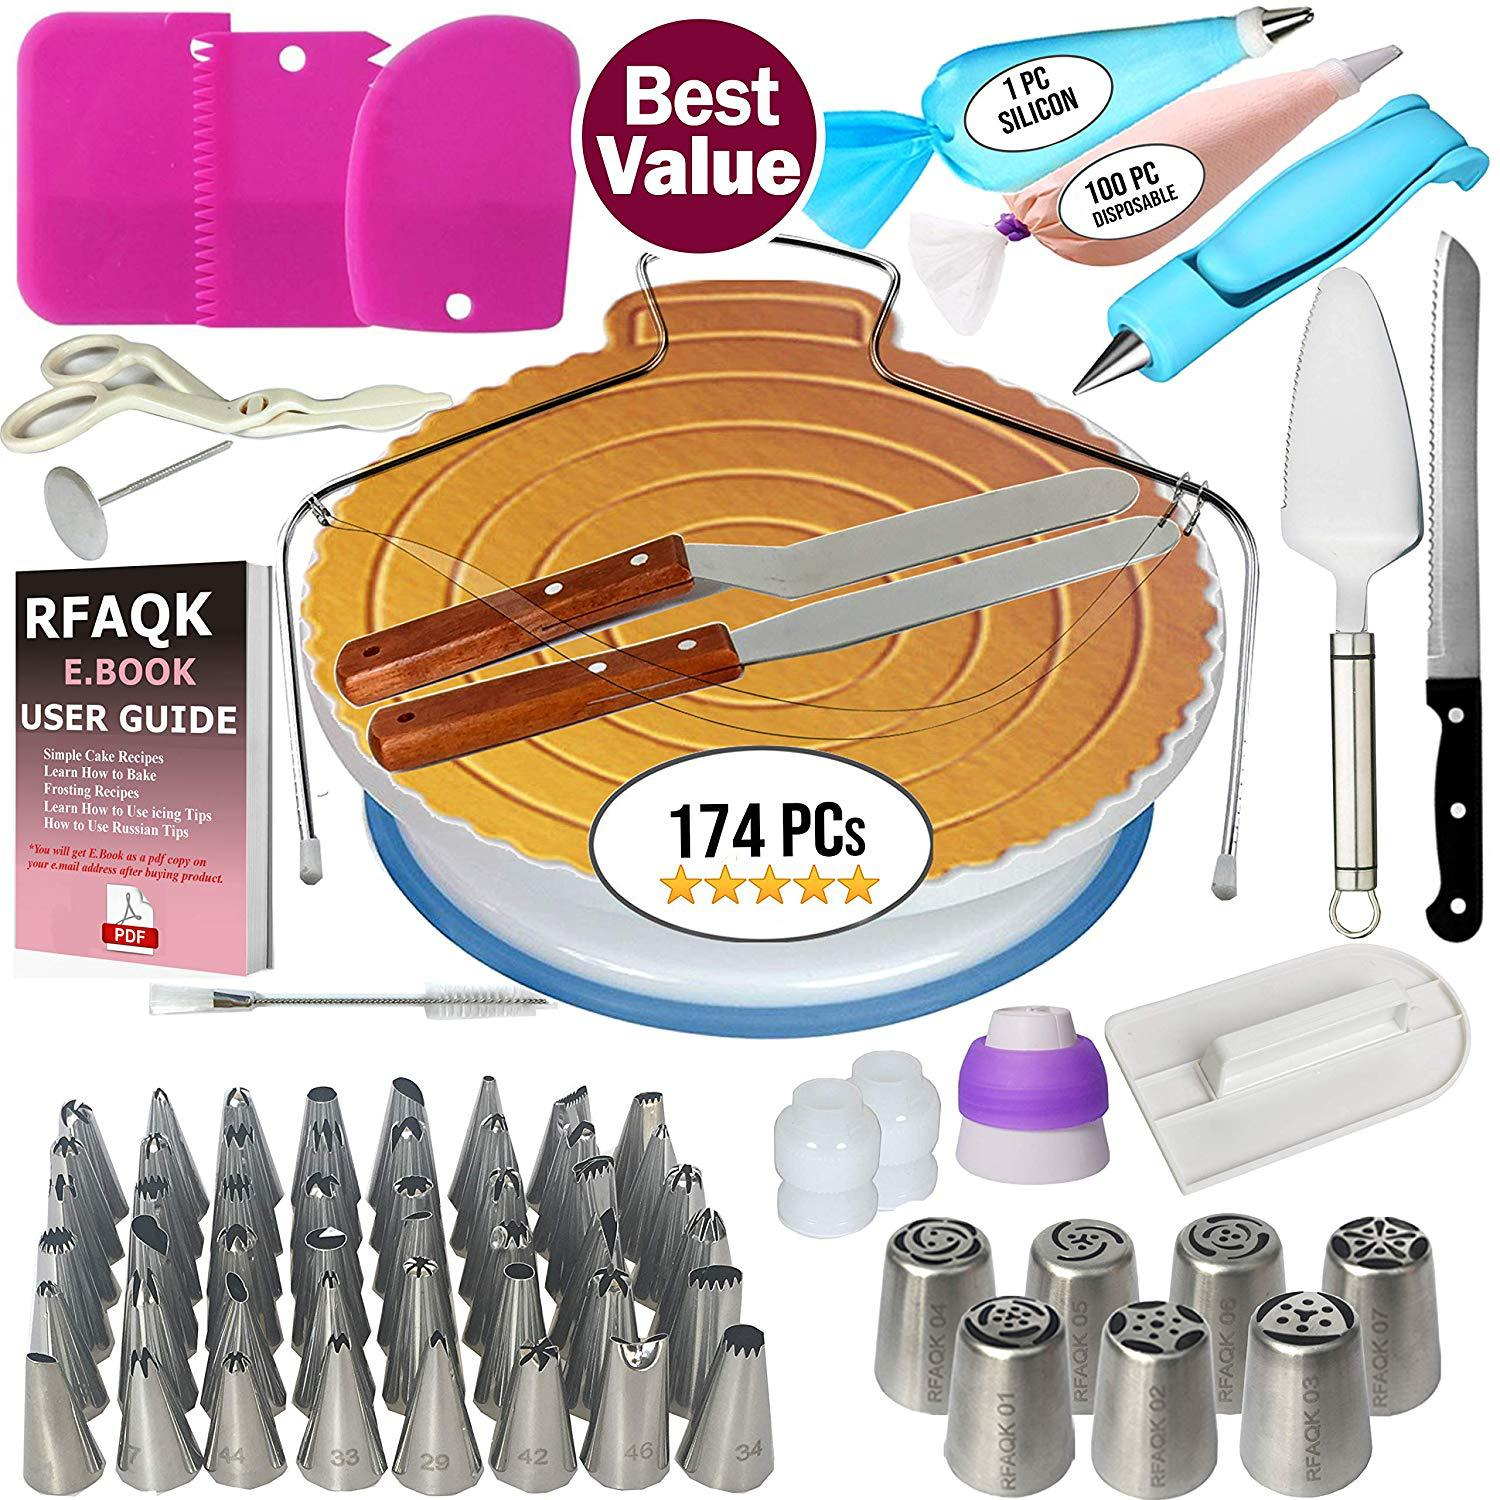 Cake Decorating Tools Kit Icing Tips Turntable Pastry Bags Couplers Cream Nozzle Baking Tools Set for Cupcakes Cookies title=